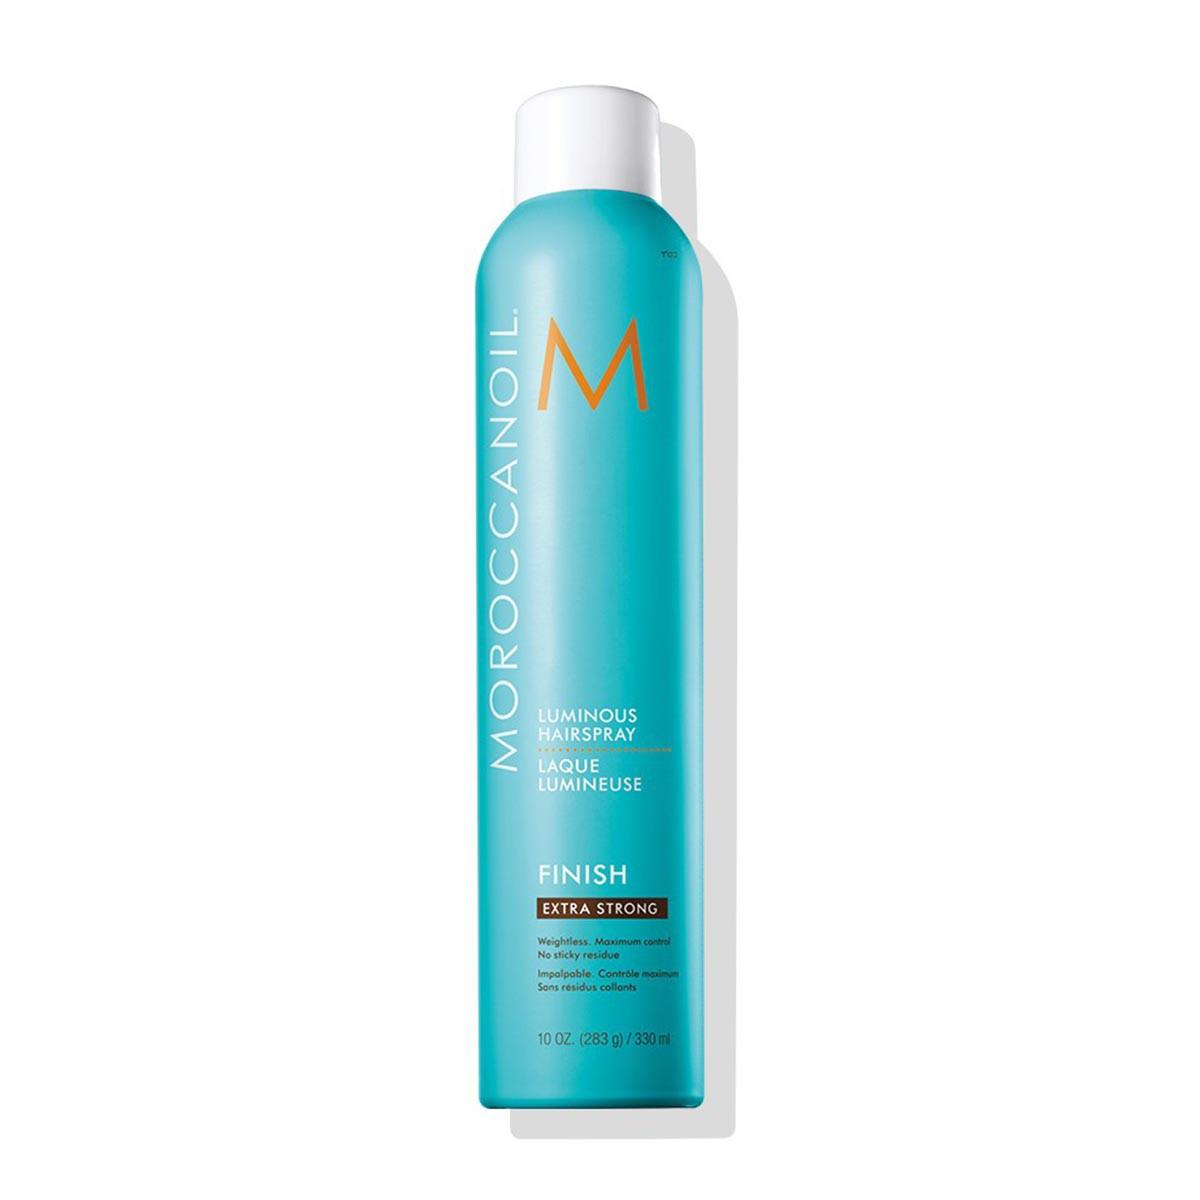 Moroccanoil Finish Extra Strong Luminous Hairspray 330 ml